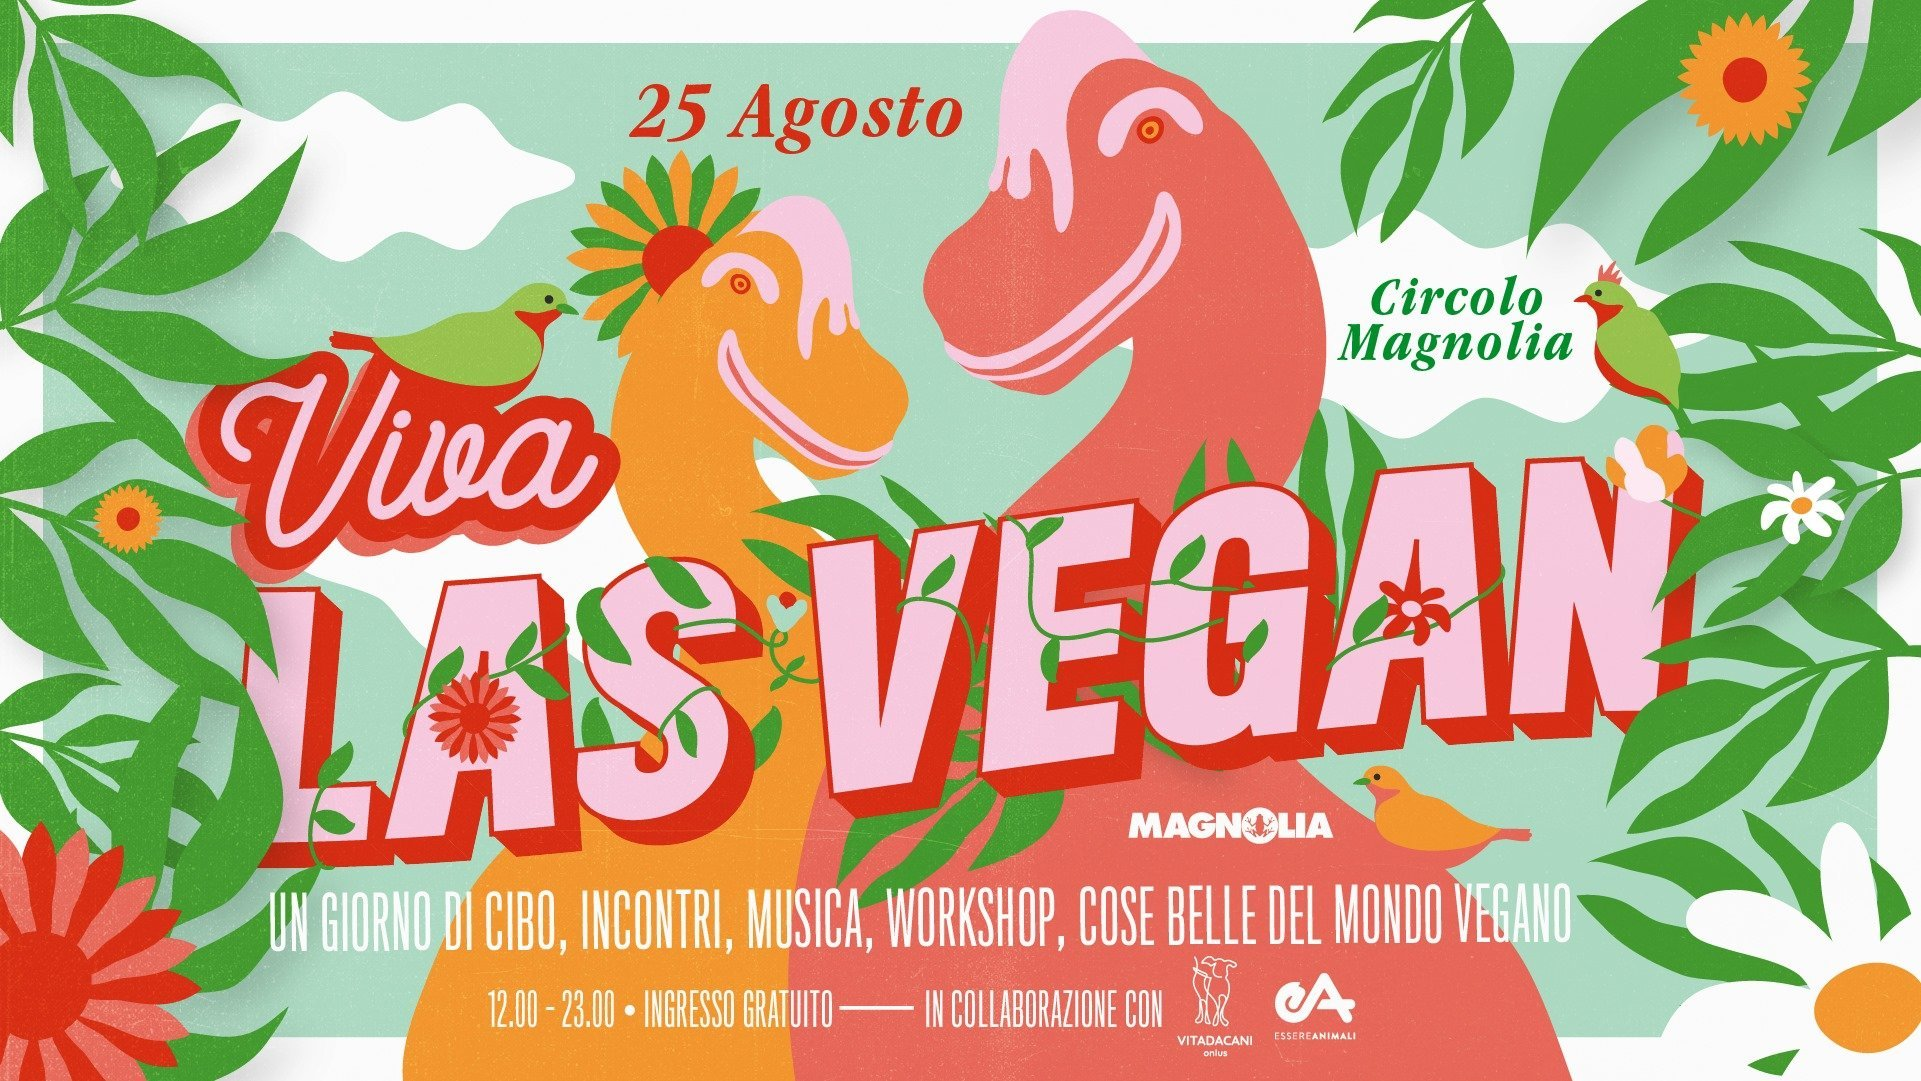 evento las vegan